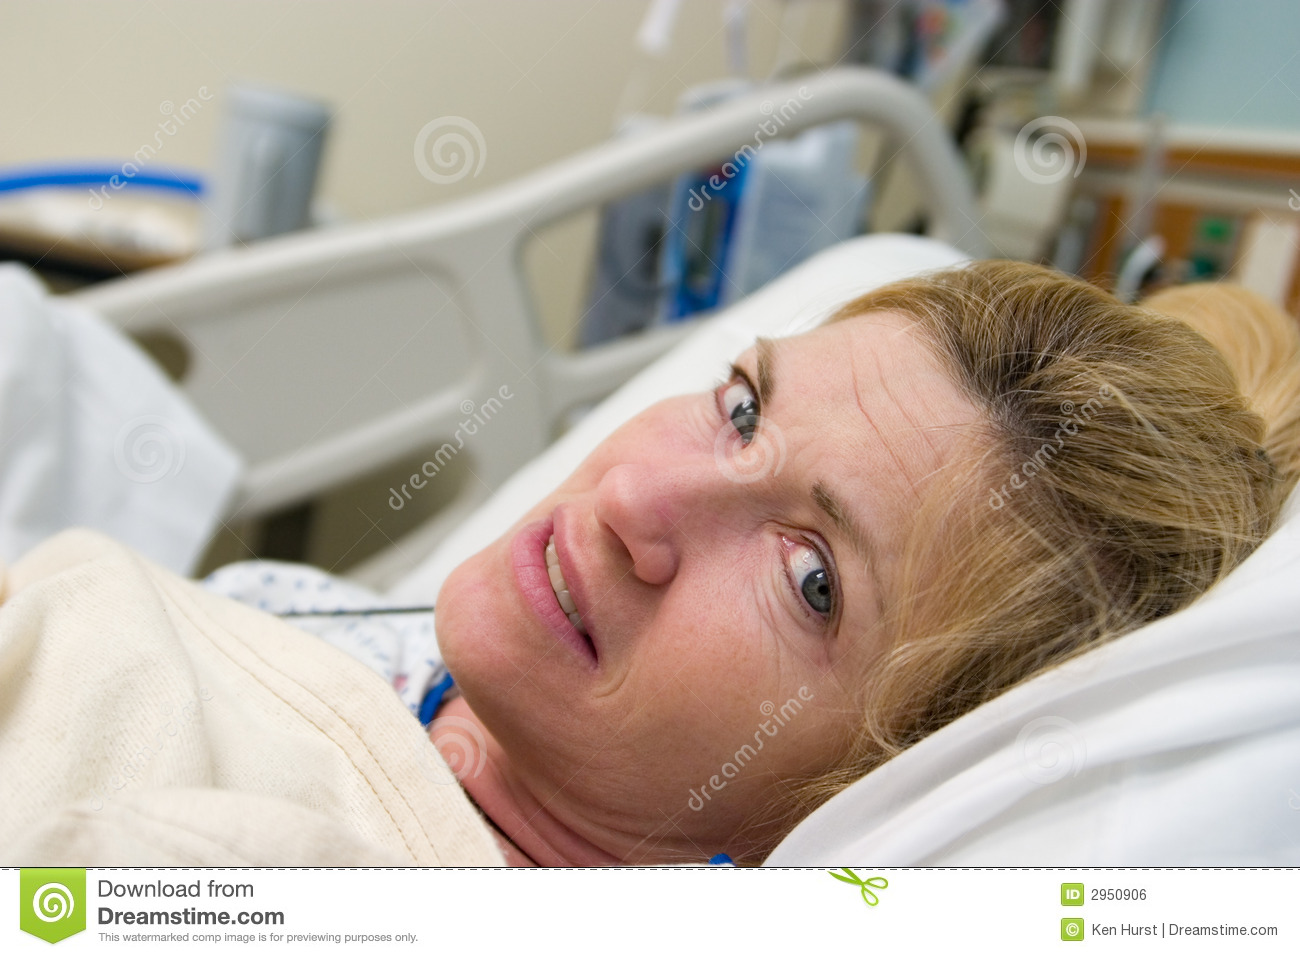 Sick In Hospital Images : Closeup of Patient in hospital bed after surgery. Horizontal landscape ...